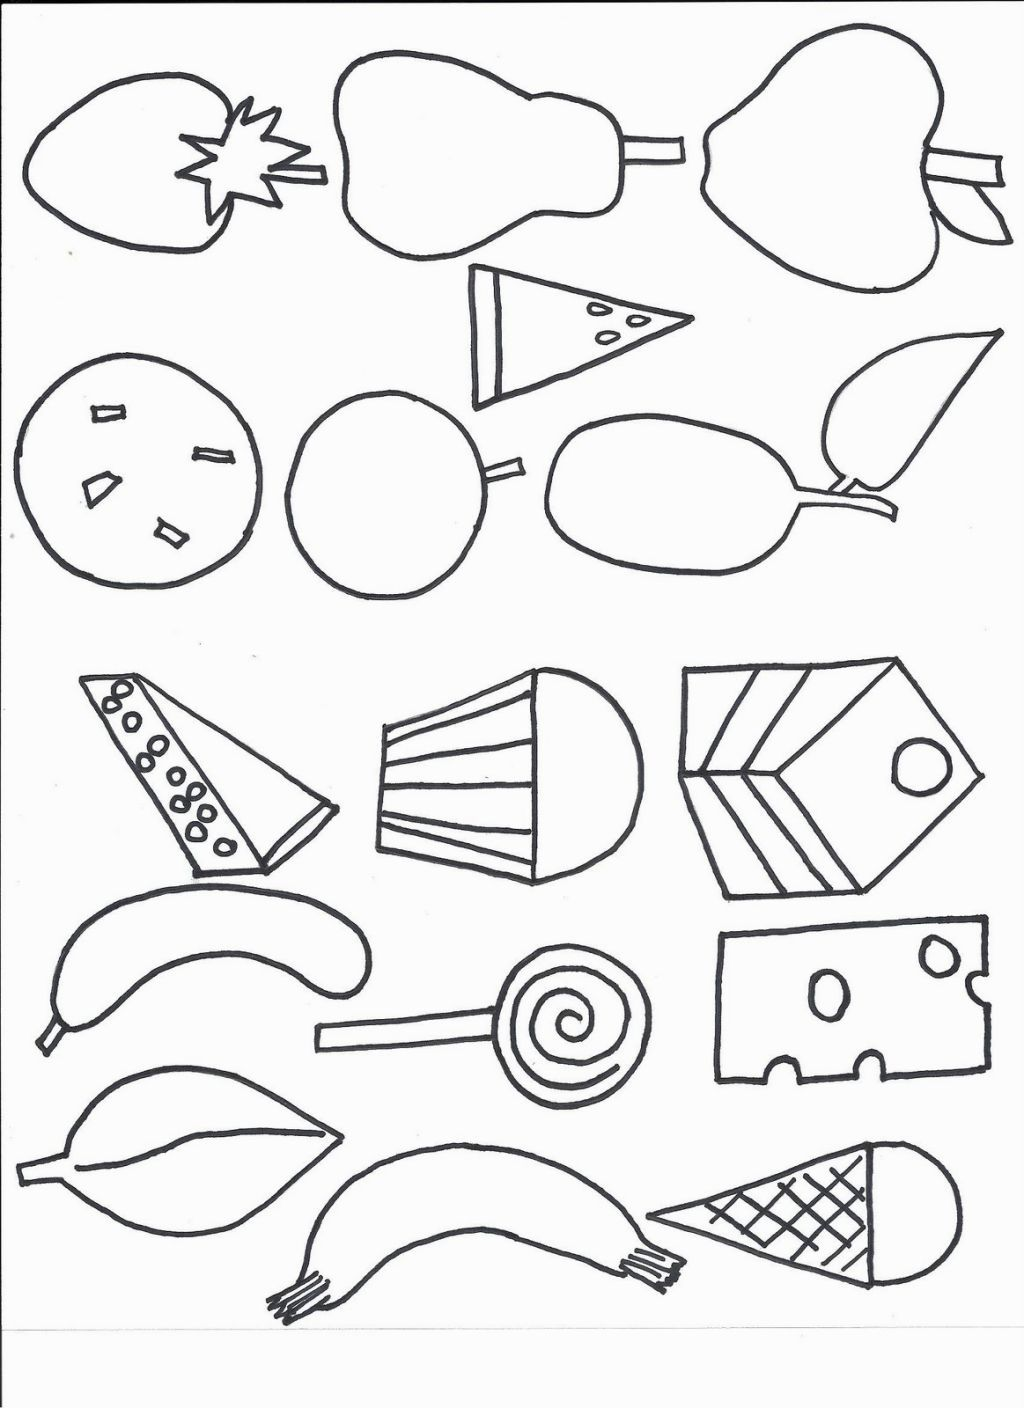 Hungry Caterpillar Coloring Page